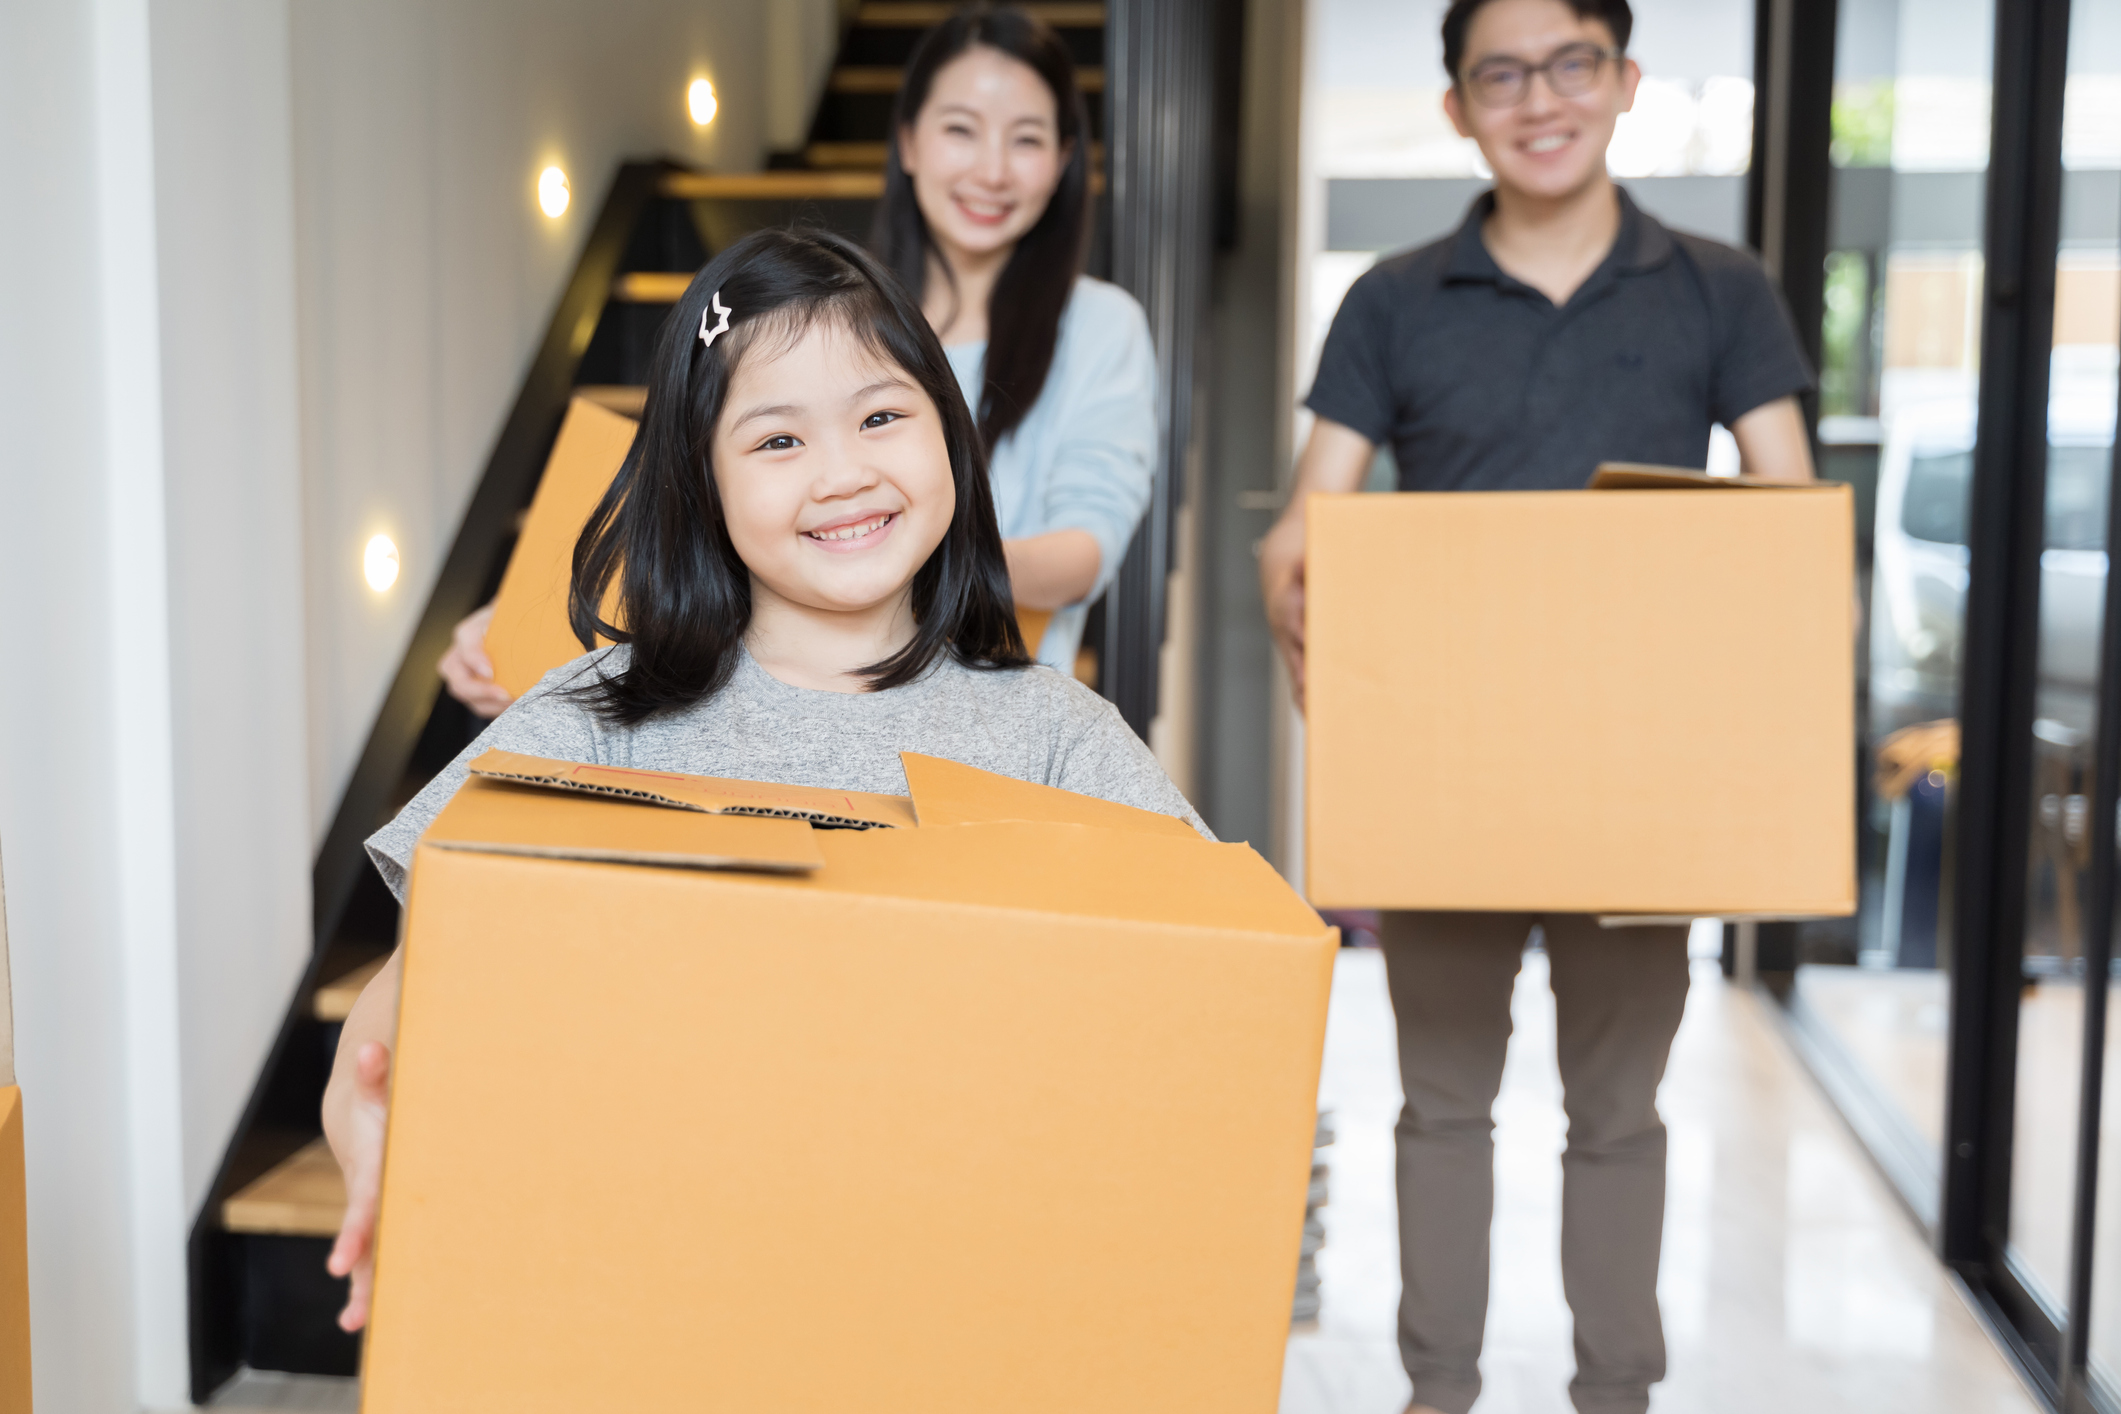 Stock photo of a family moving boxes